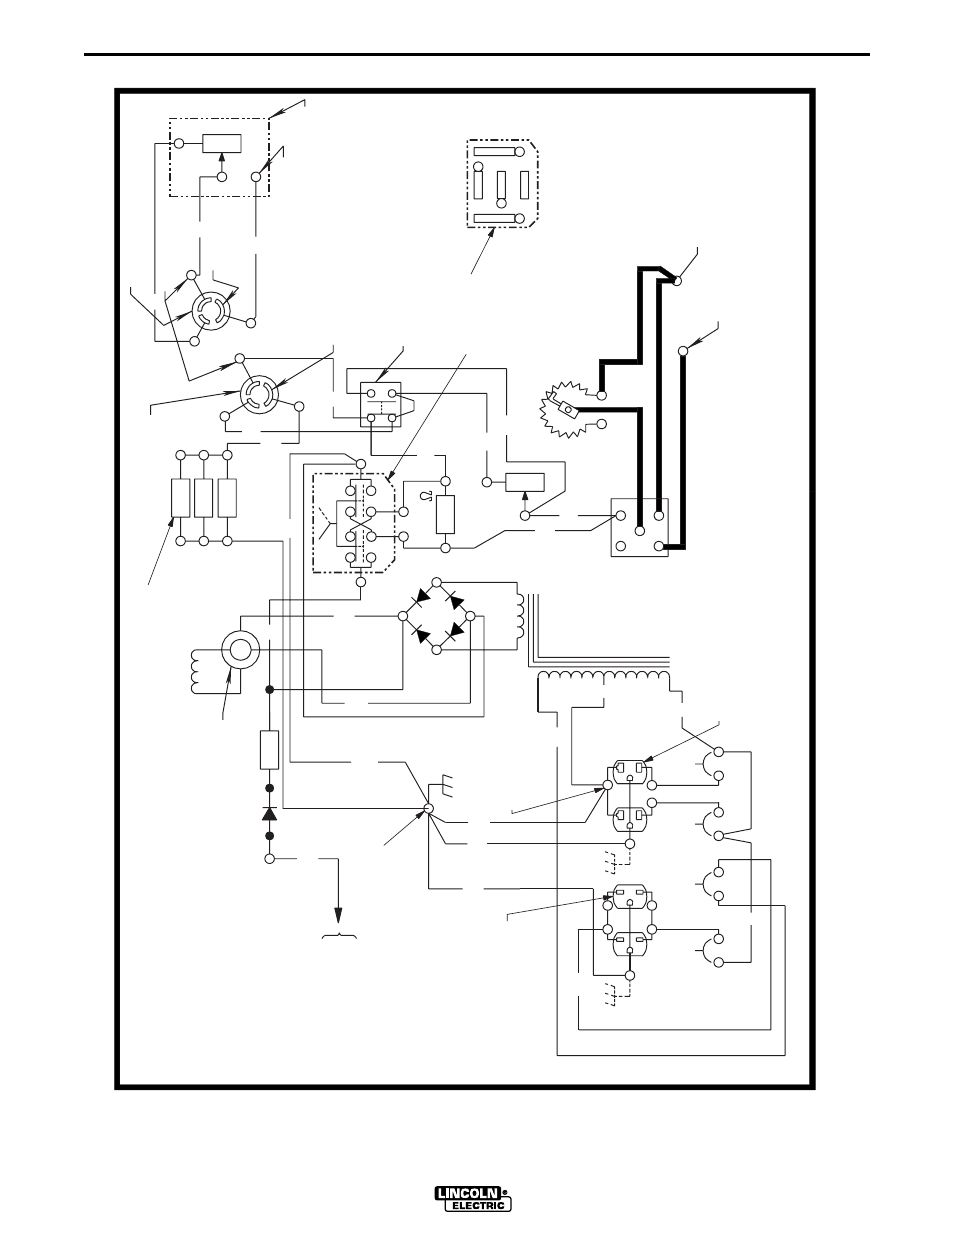 hight resolution of wiring diagrams sae400 weld n air control wiring diagram sae 400 65 lincoln wiring lincoln wiring diagrams